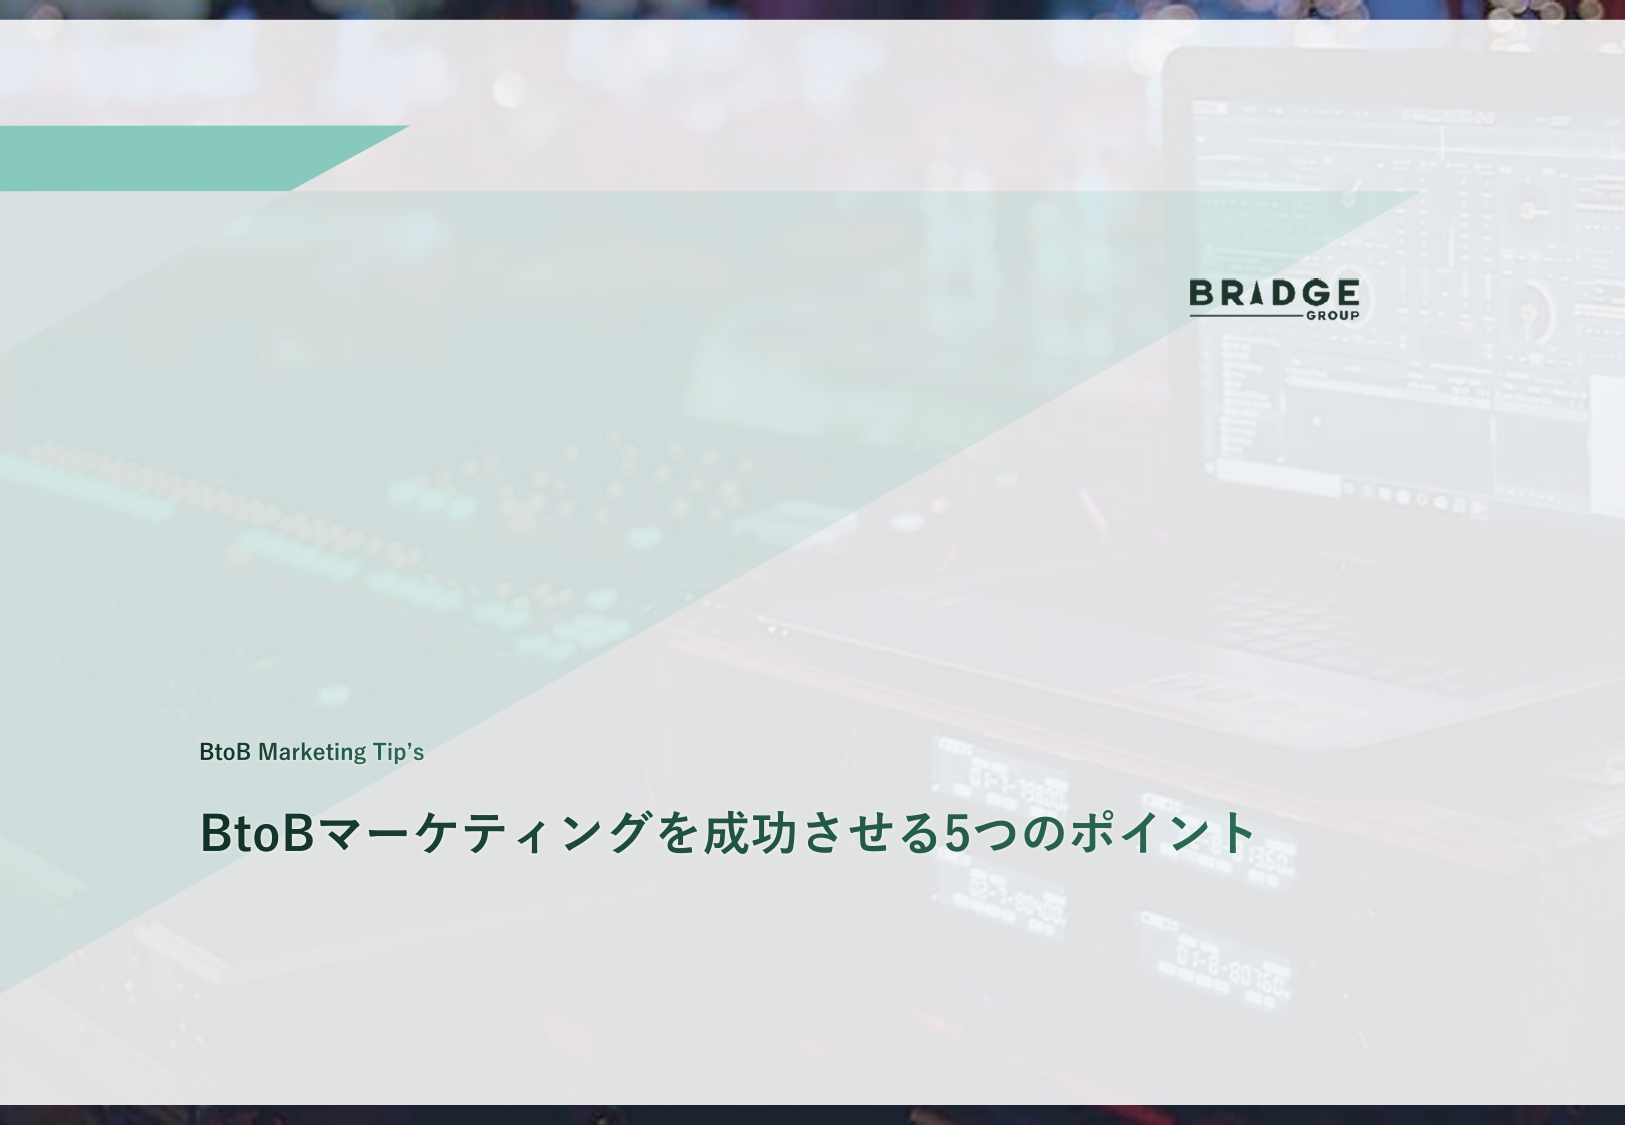 Bridge_BTM-005-v2_page-0001